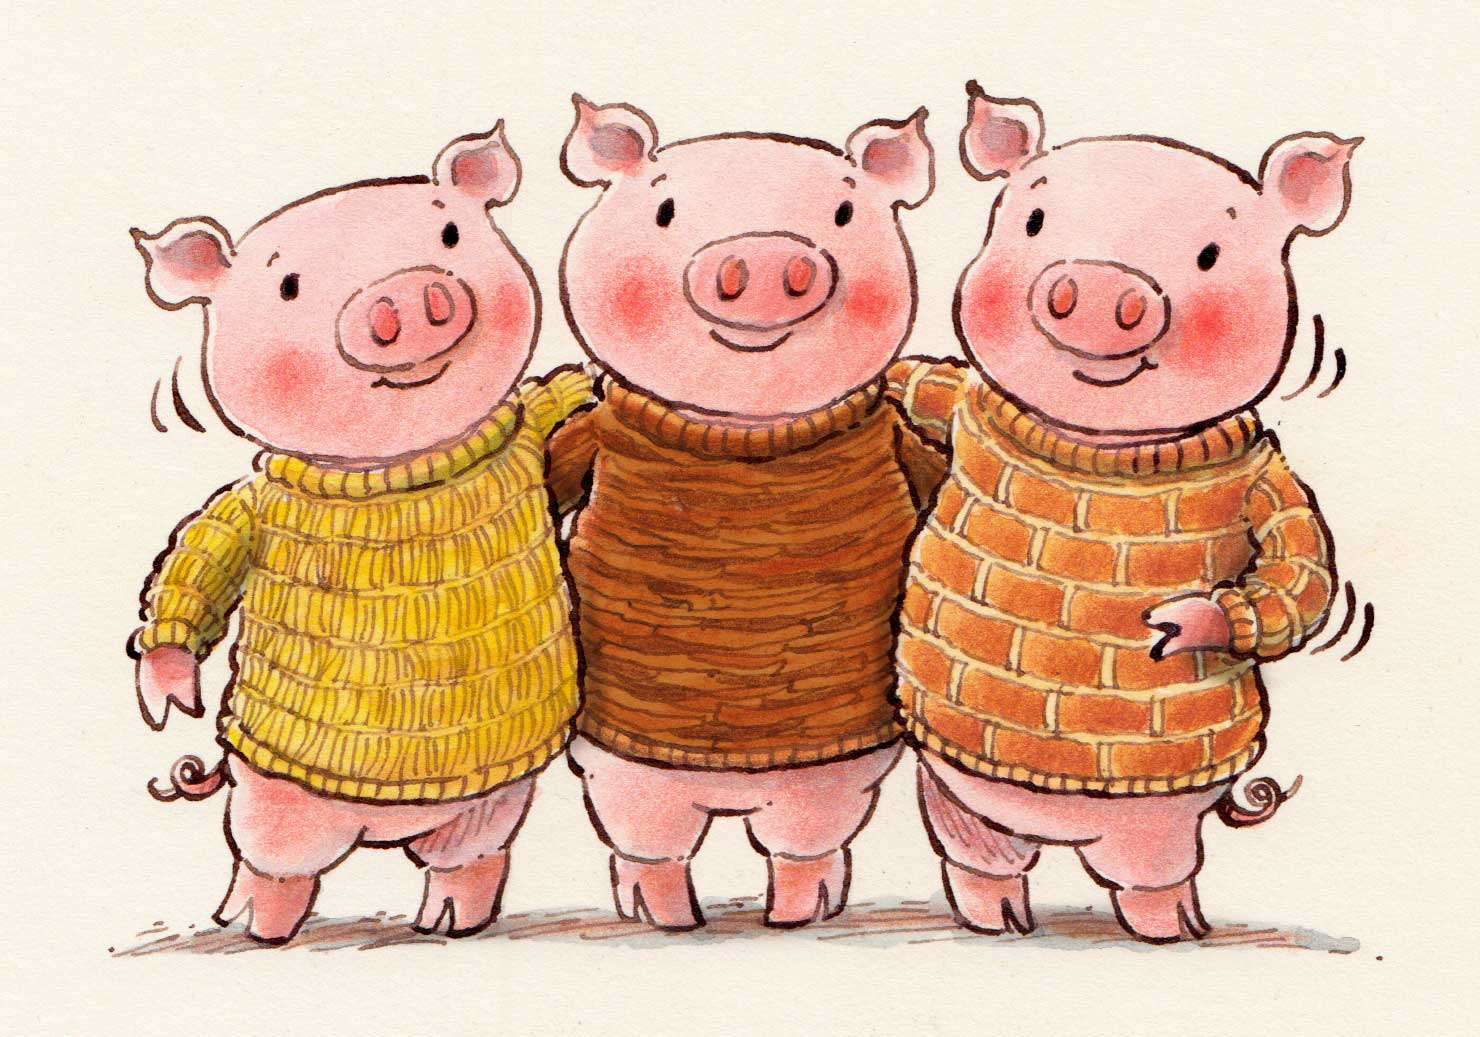 Mary's Illustration Blog: Three Little Pigs